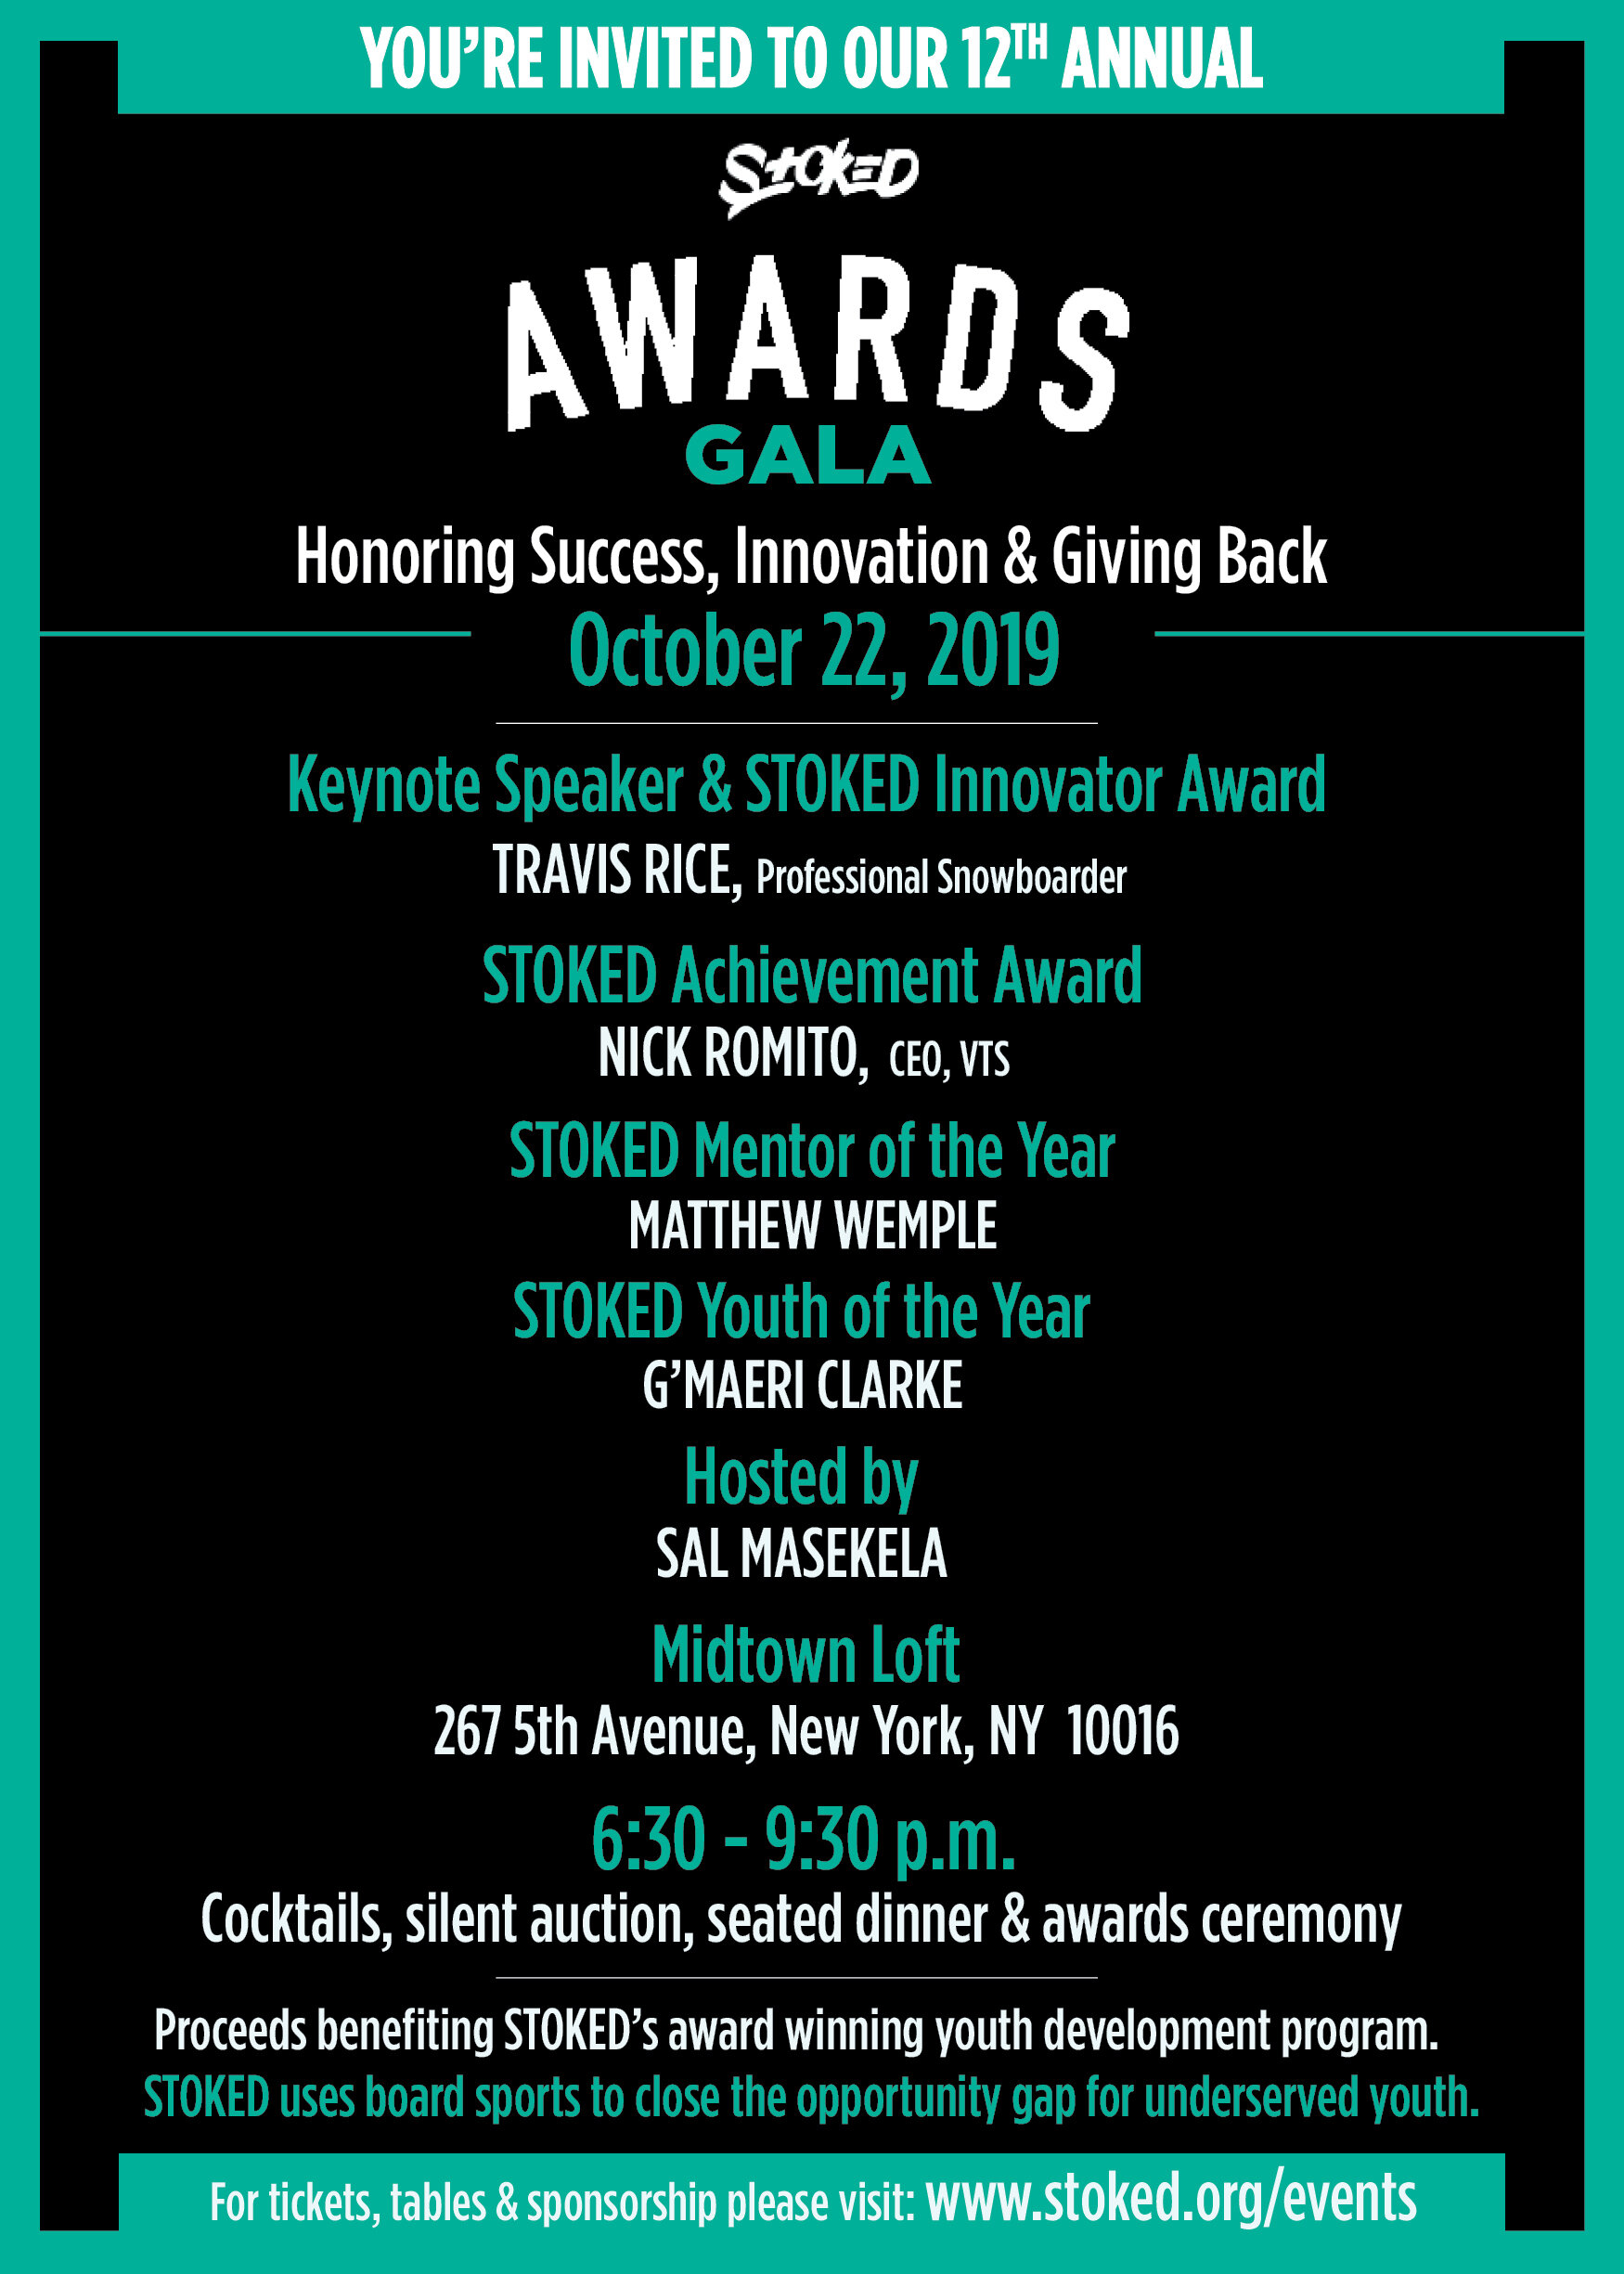 Stoked awards nyc2019_3.jpg